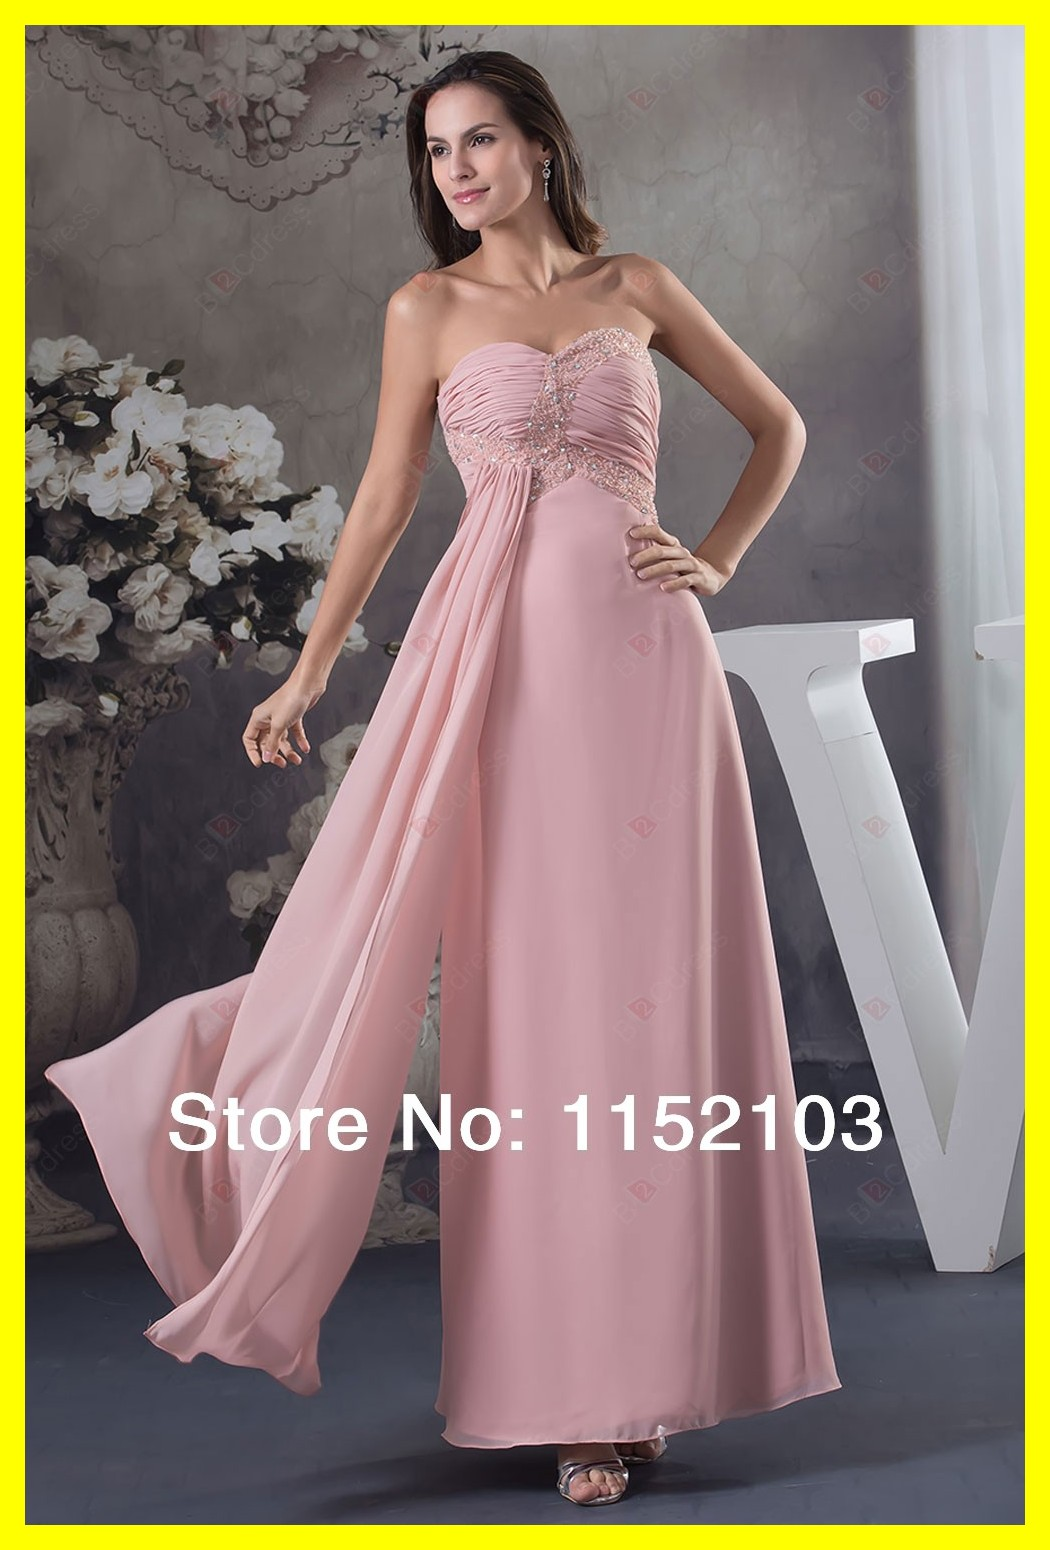 Design your formal dress gallery dresses design ideas design your formal dress gallery dresses design ideas design your own formal dress online choice image ombrellifo Image collections